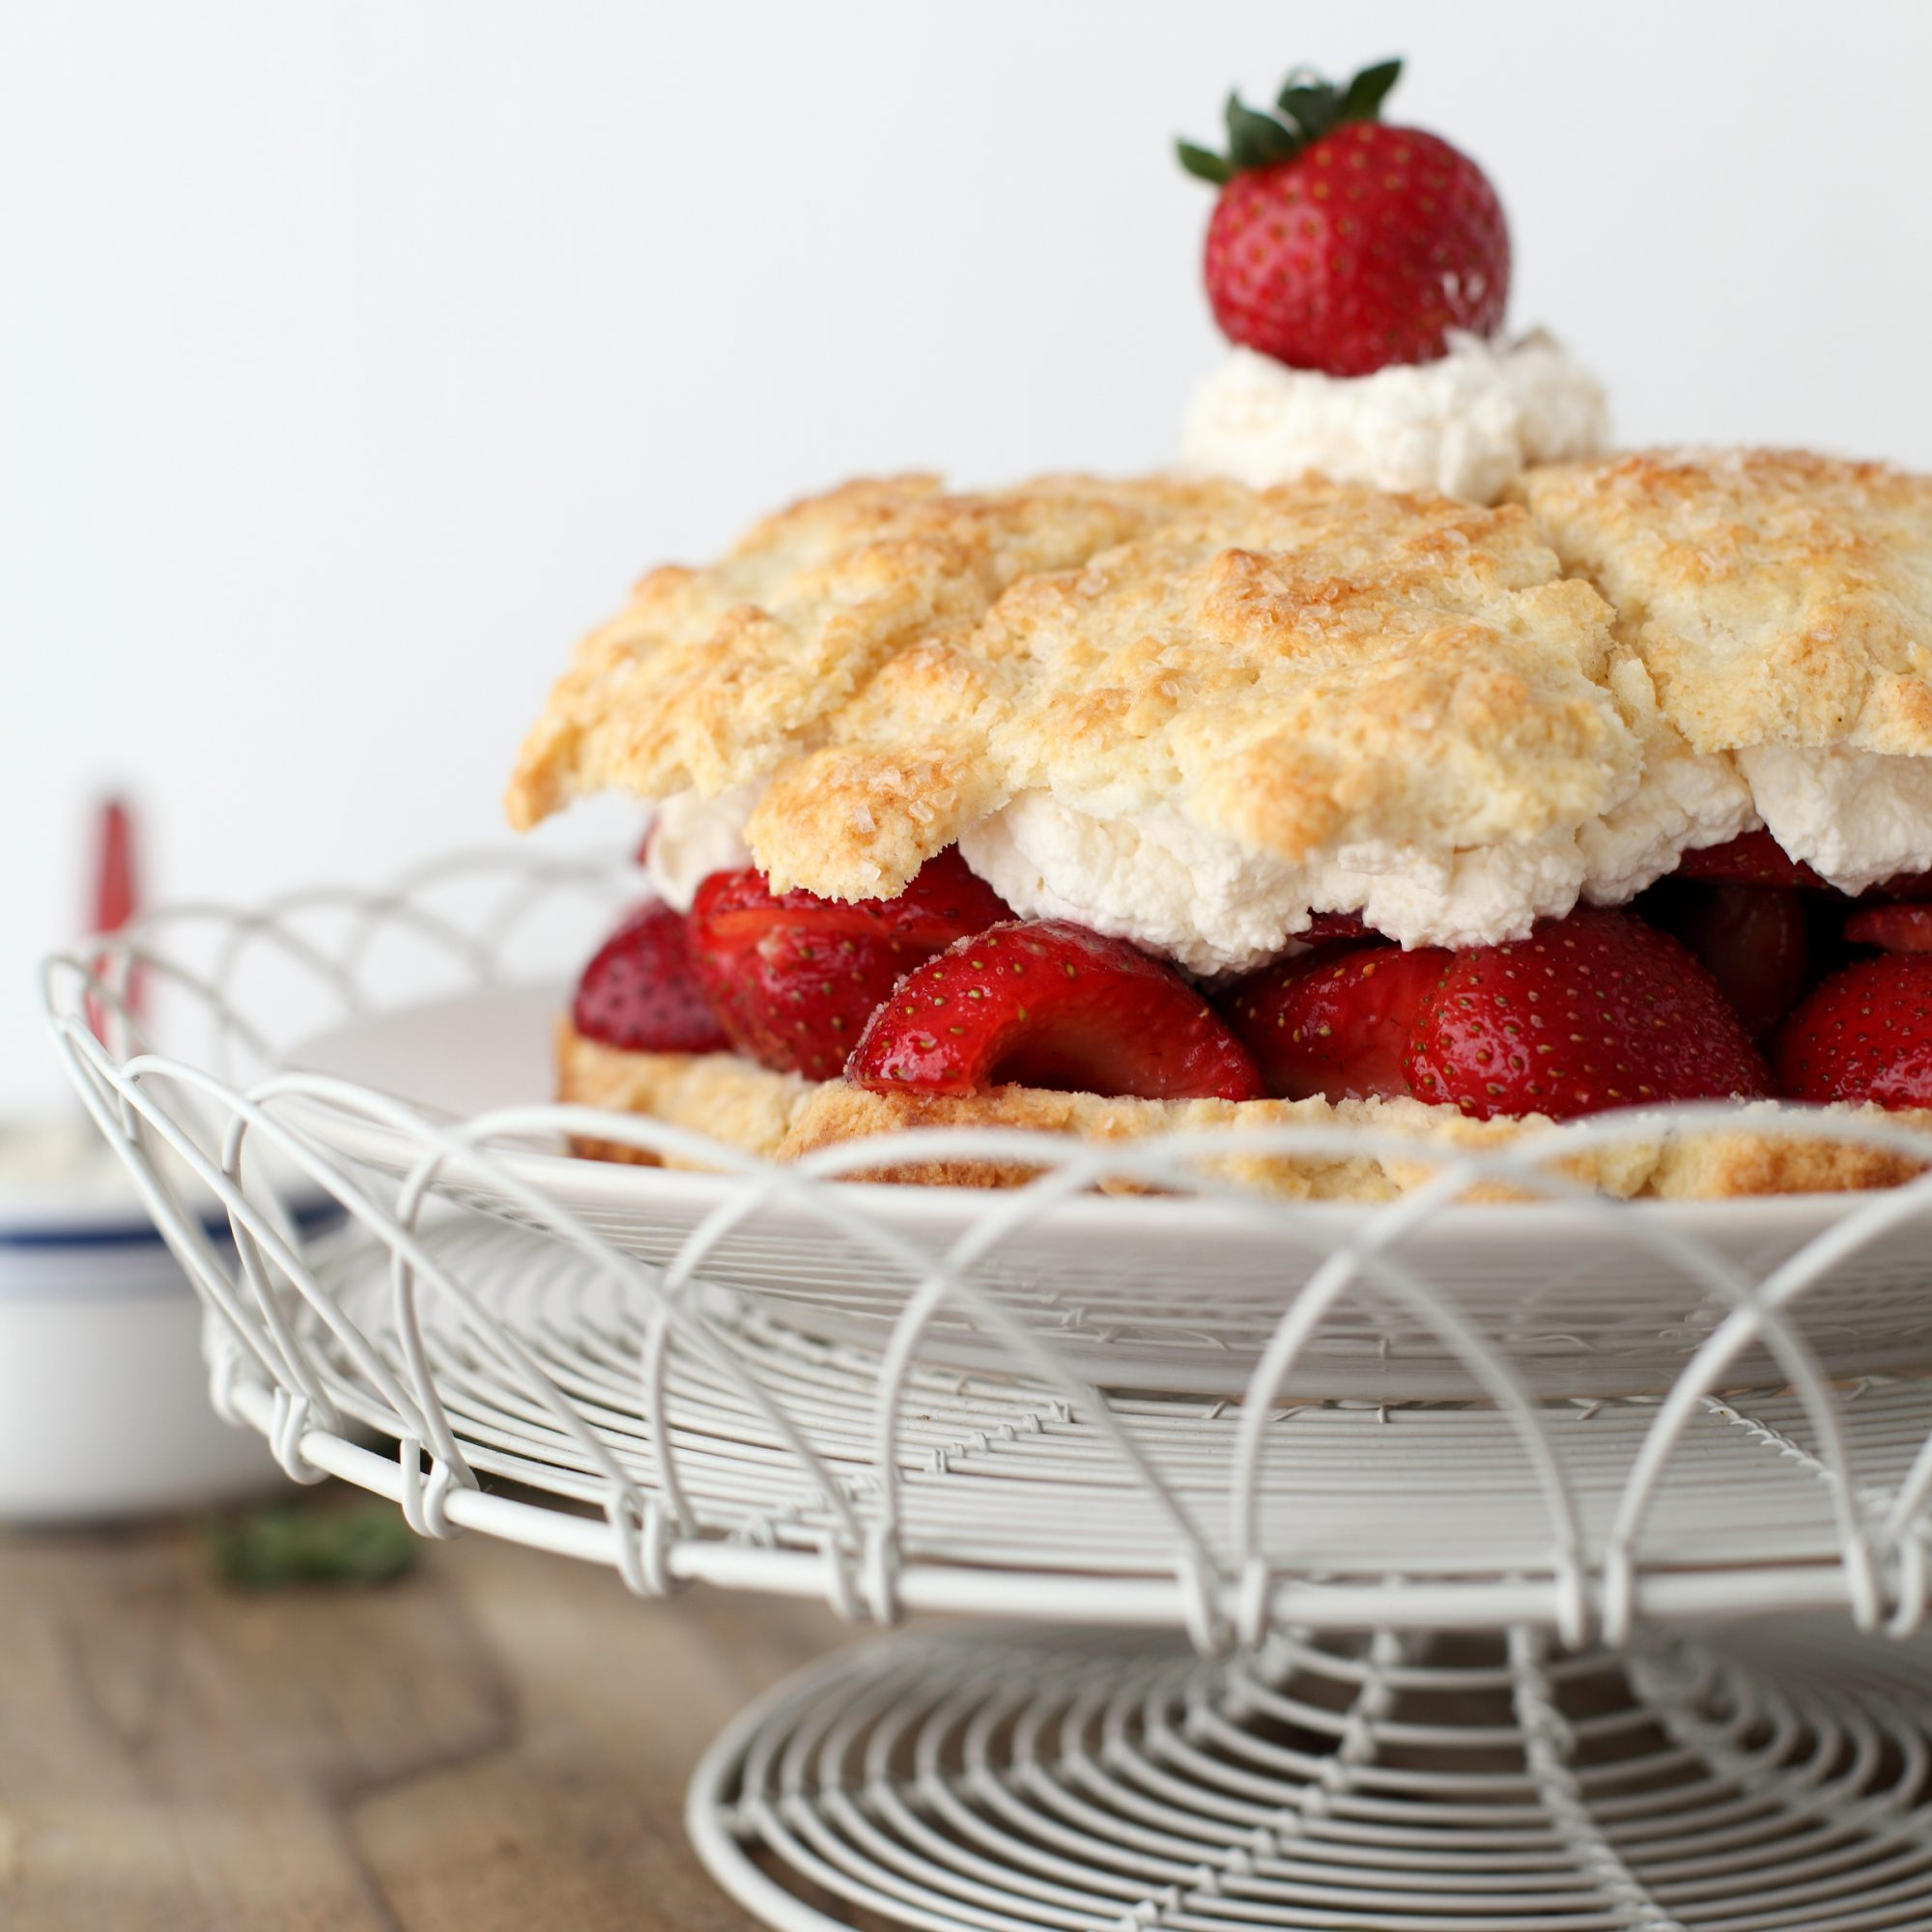 how to prepare strawberries for shortcake